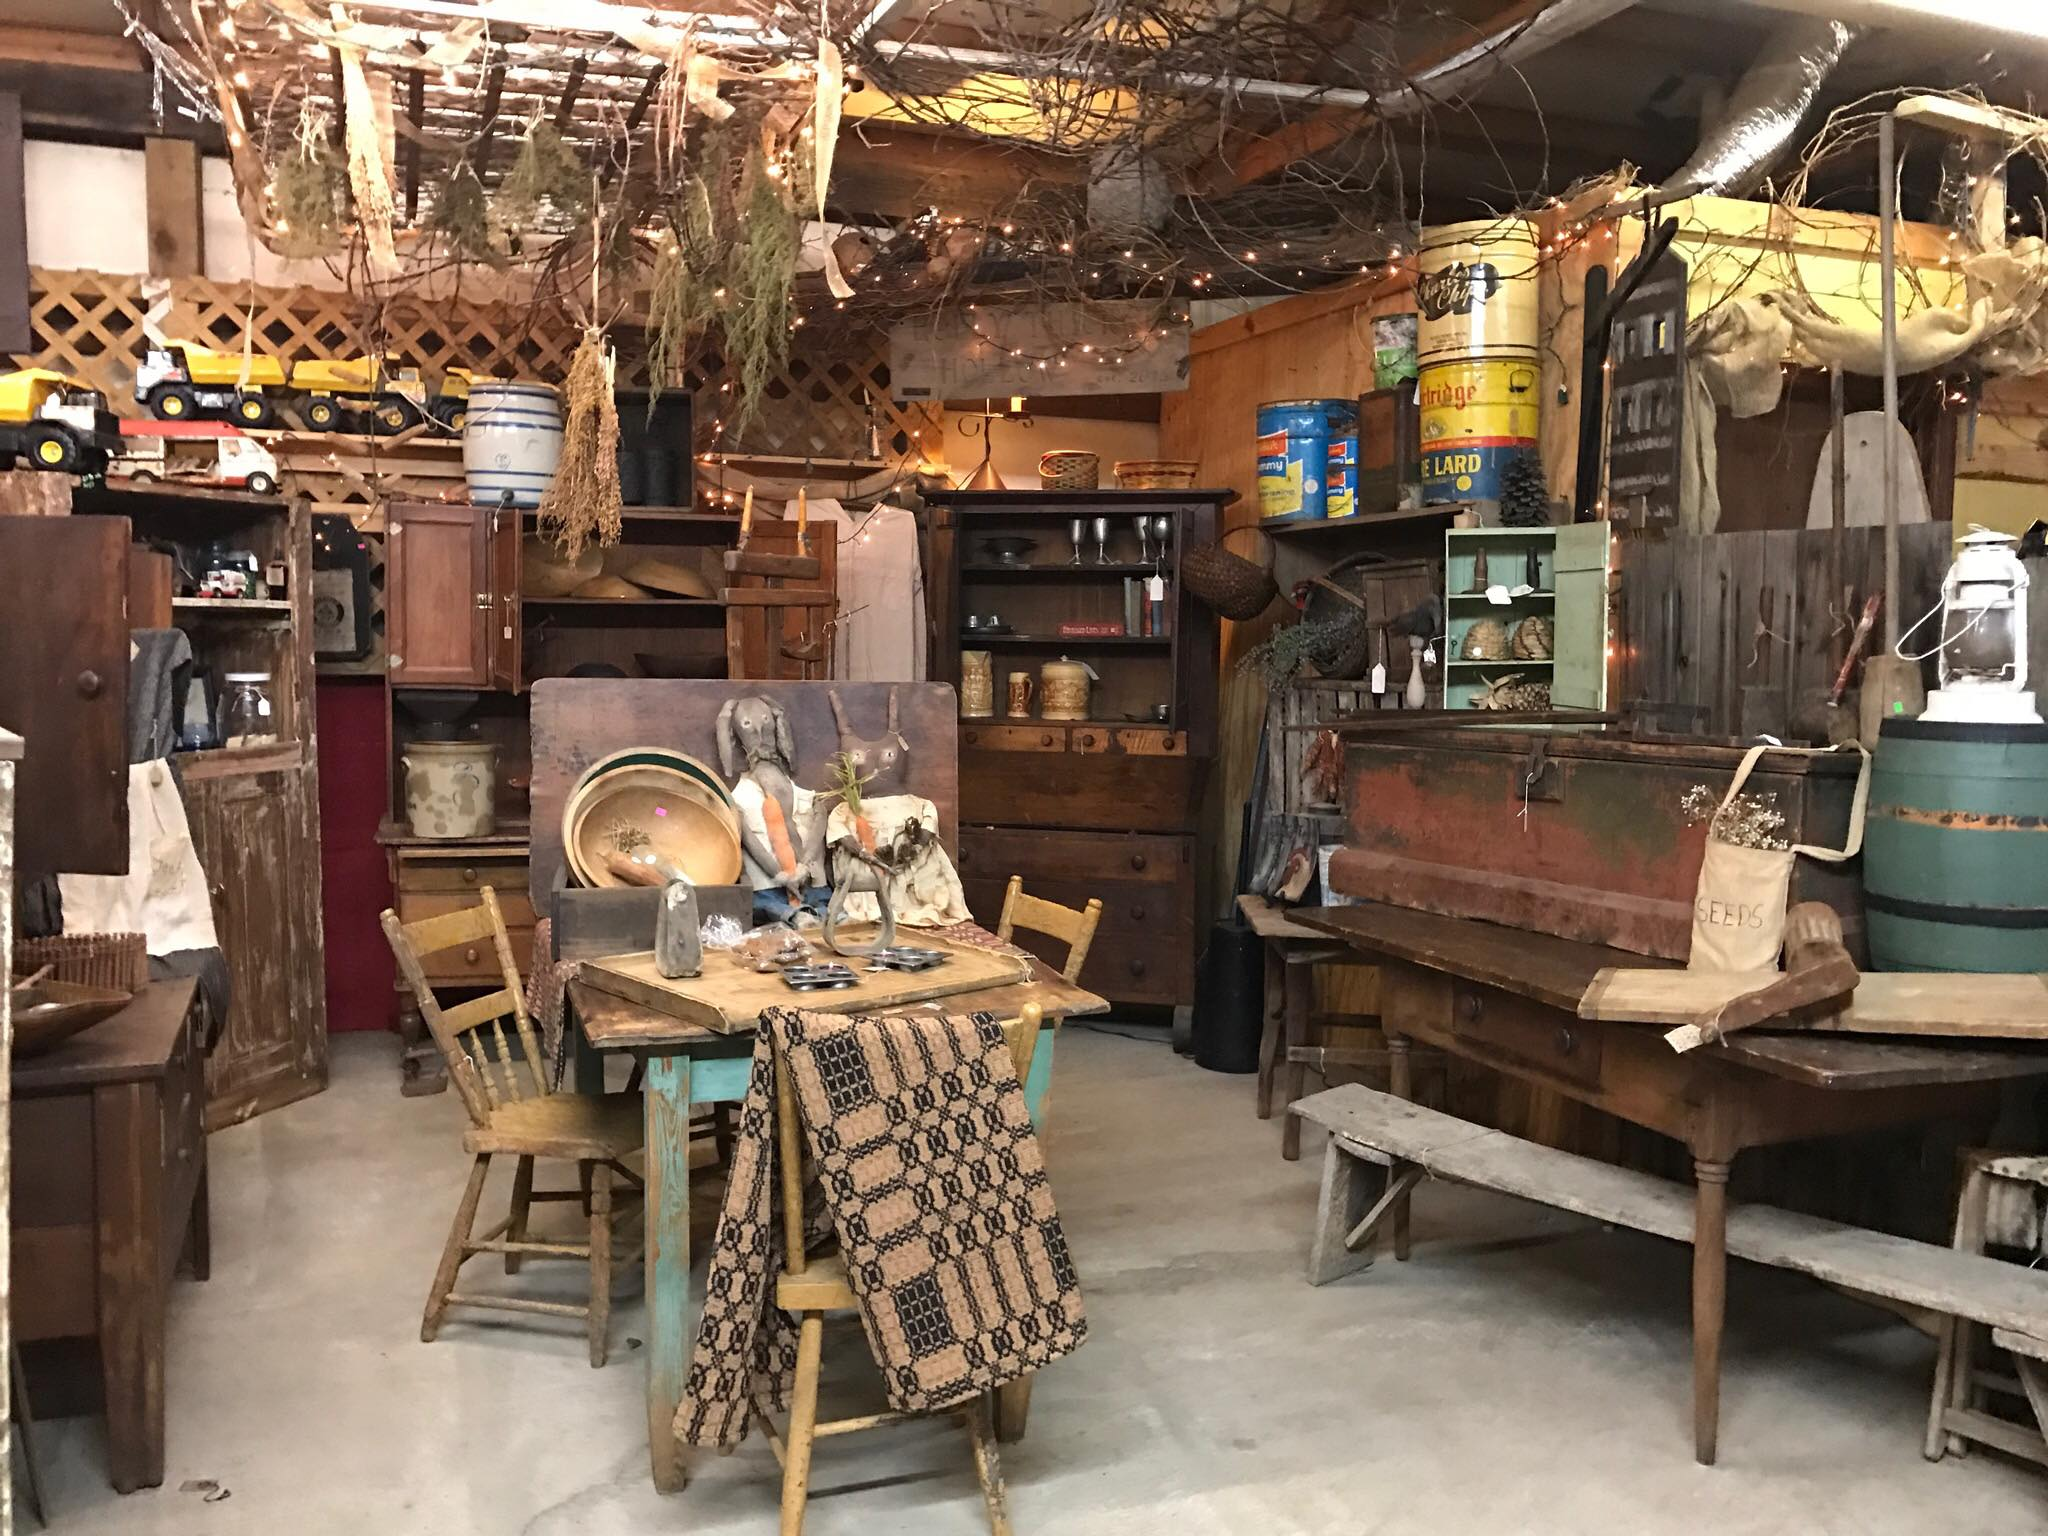 Gwen's Country Attic - Letcher CountyGwen's Country Attic has a variety of antiques, collectibles and primitive decor for your home from several local vendors.